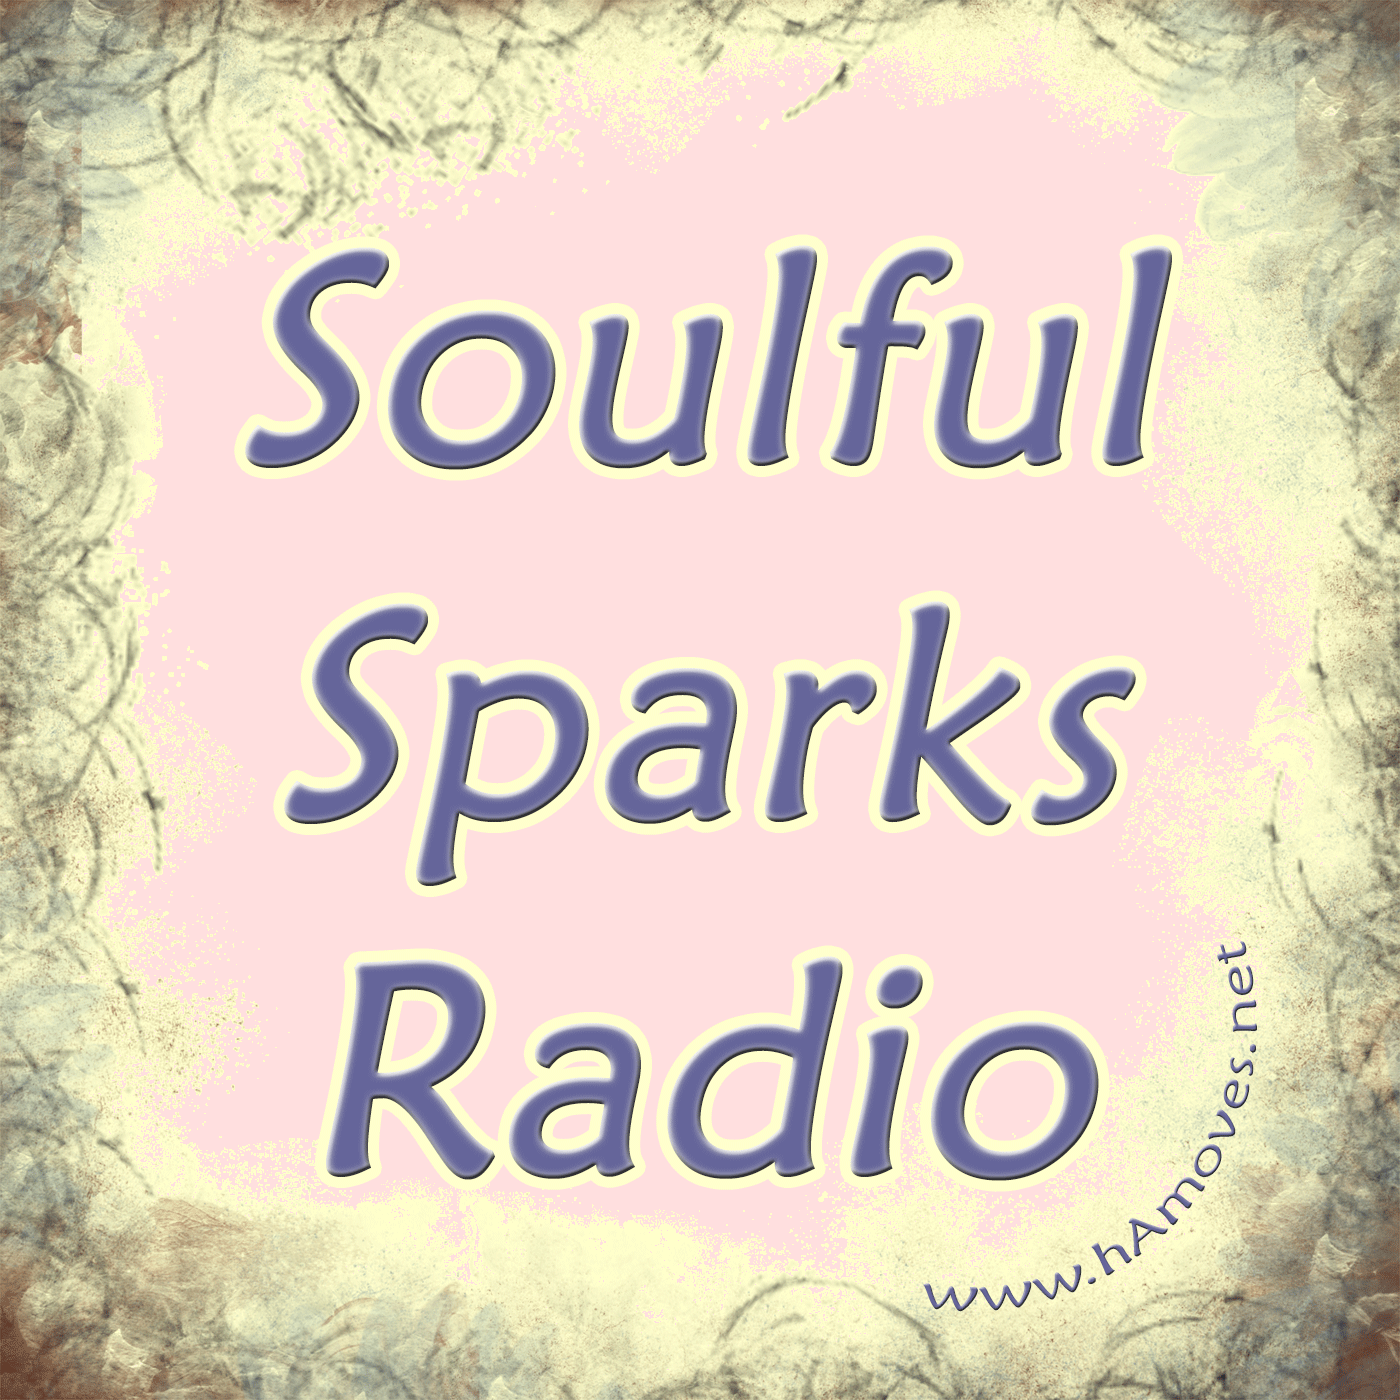 Soulful Sparks Radio